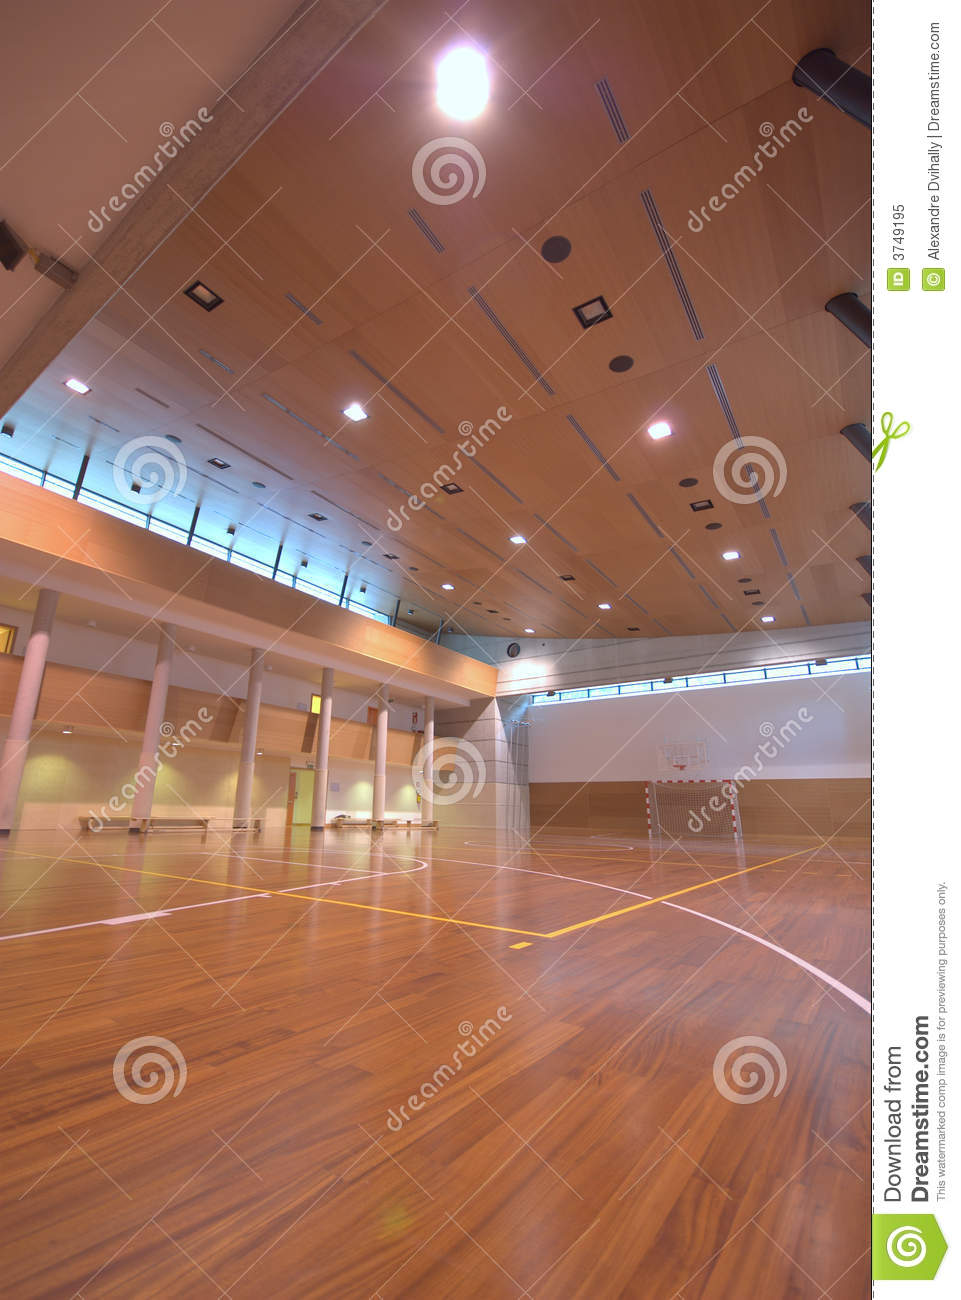 Sport court indoor royalty free stock photo image 3749195 for Free inside basketball courts